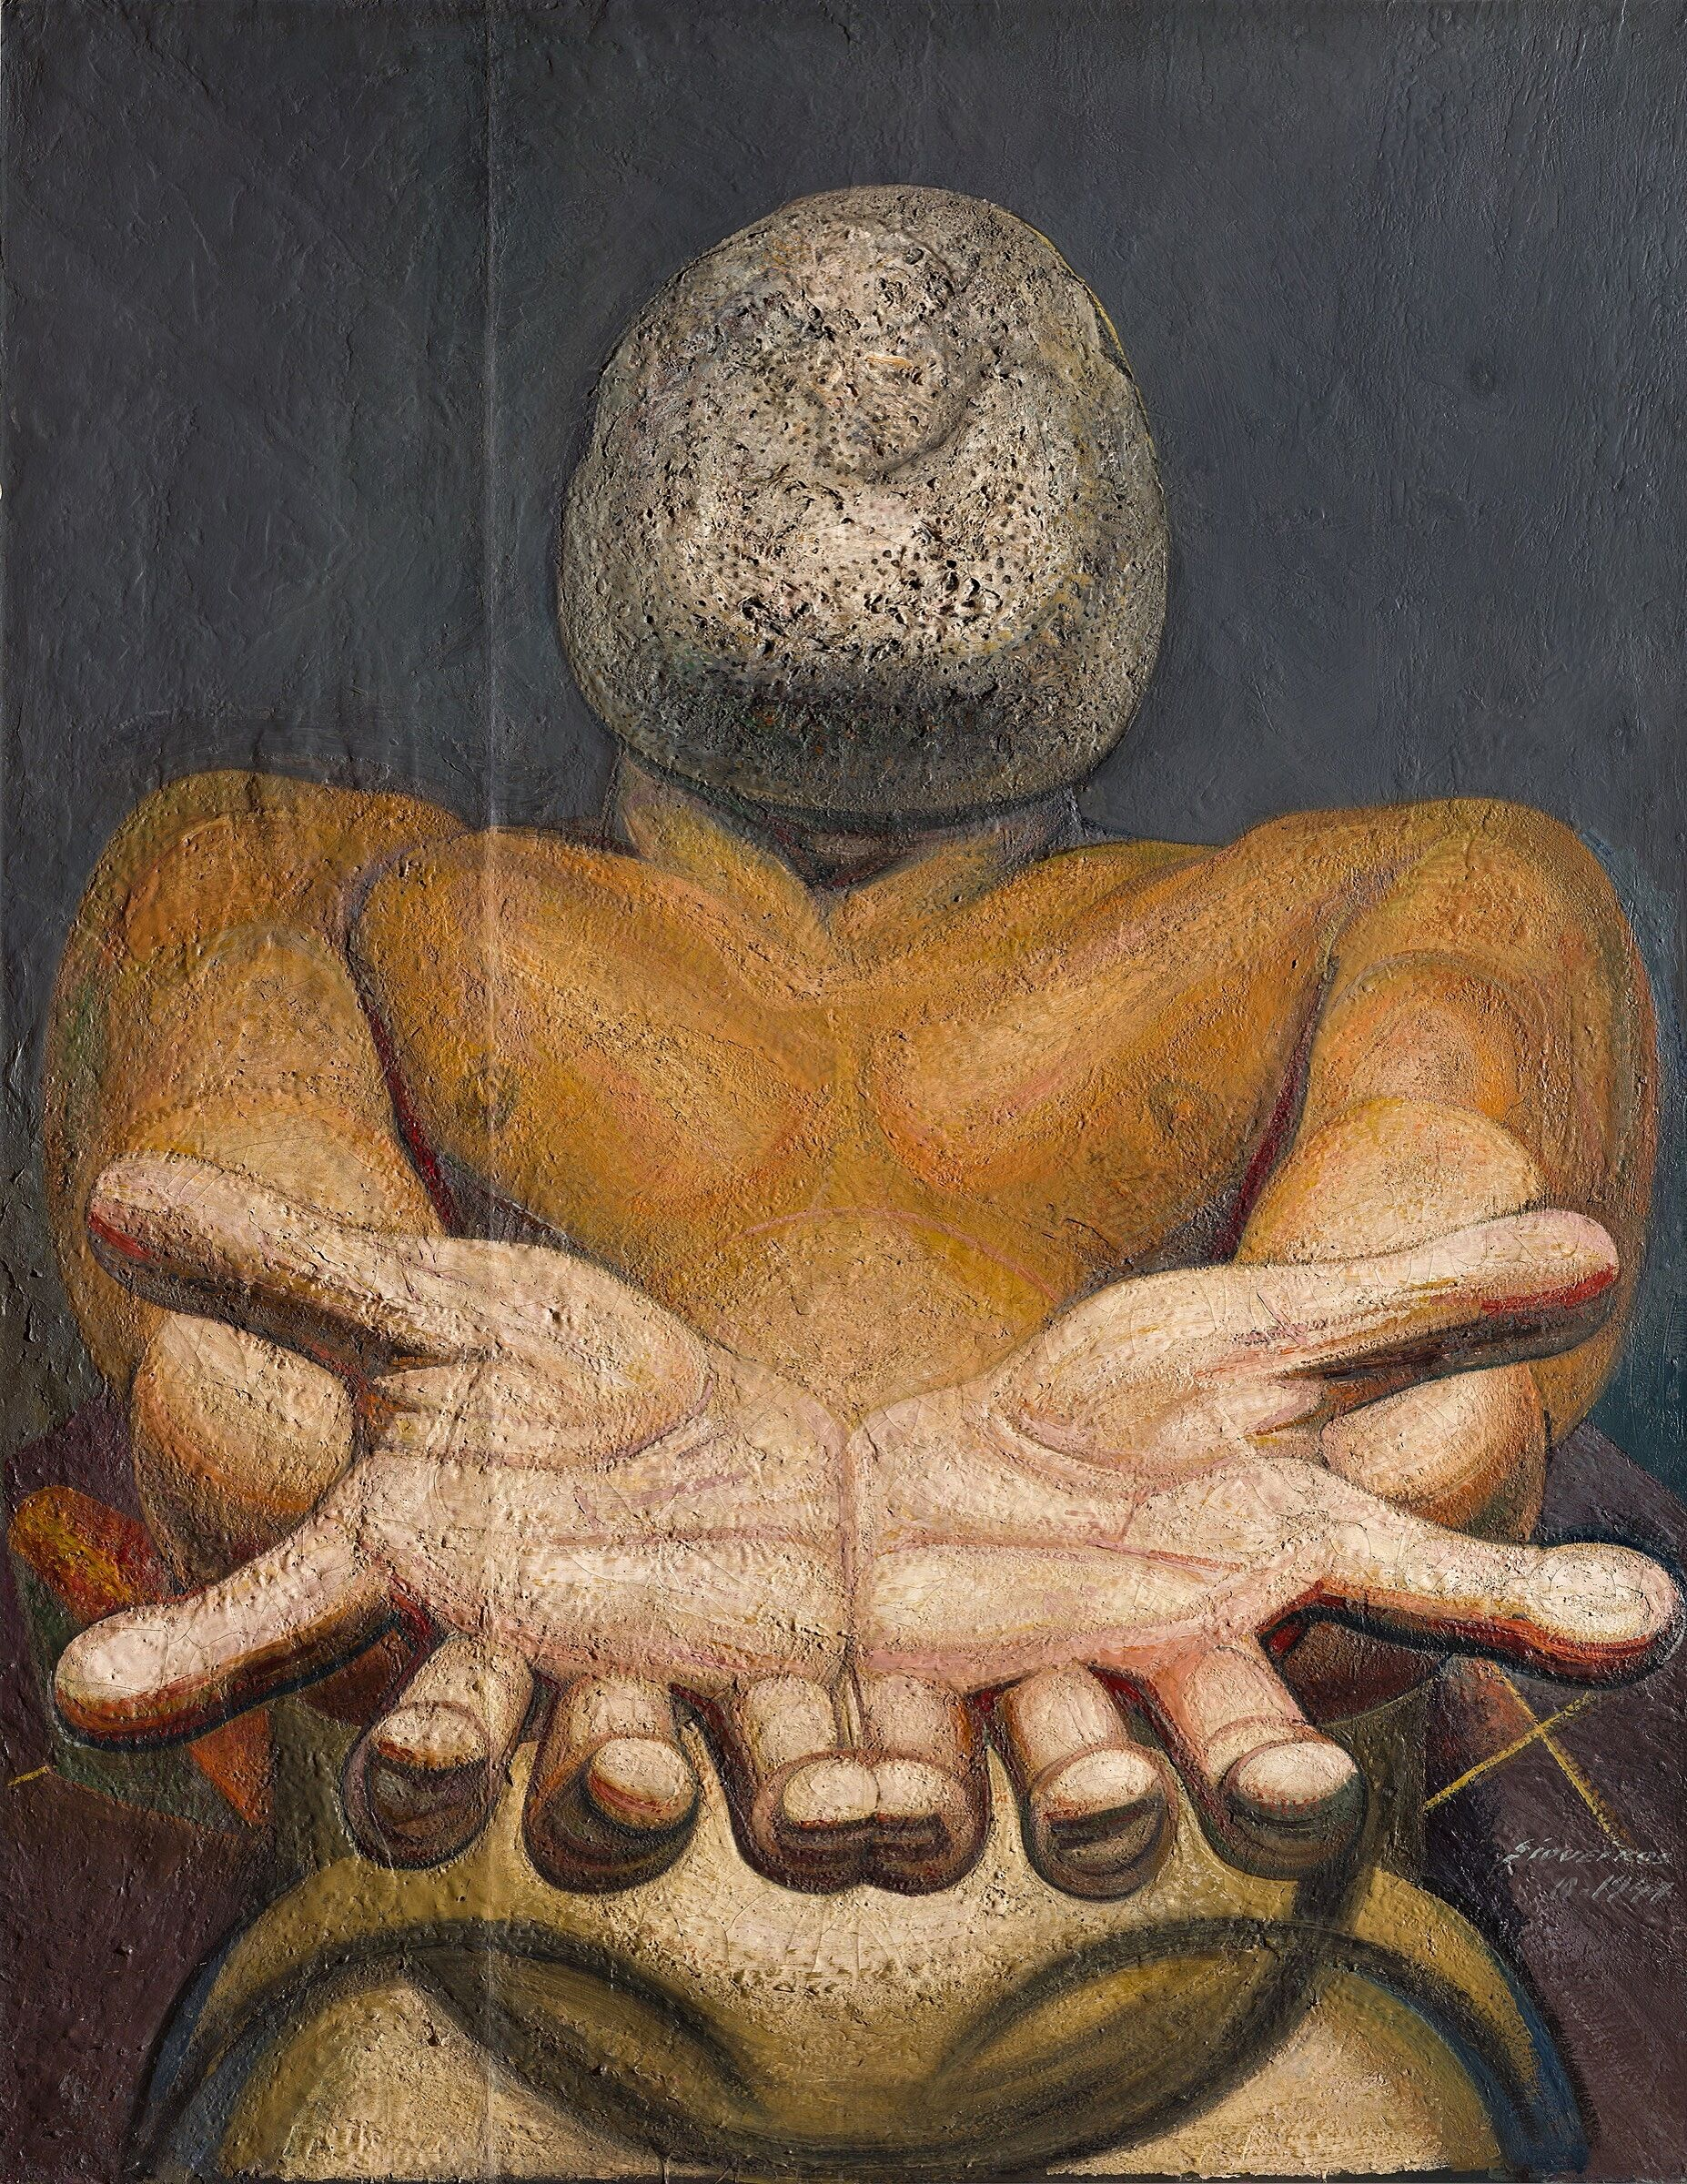 A painting of a man with outstretched hands and a rock for a face.